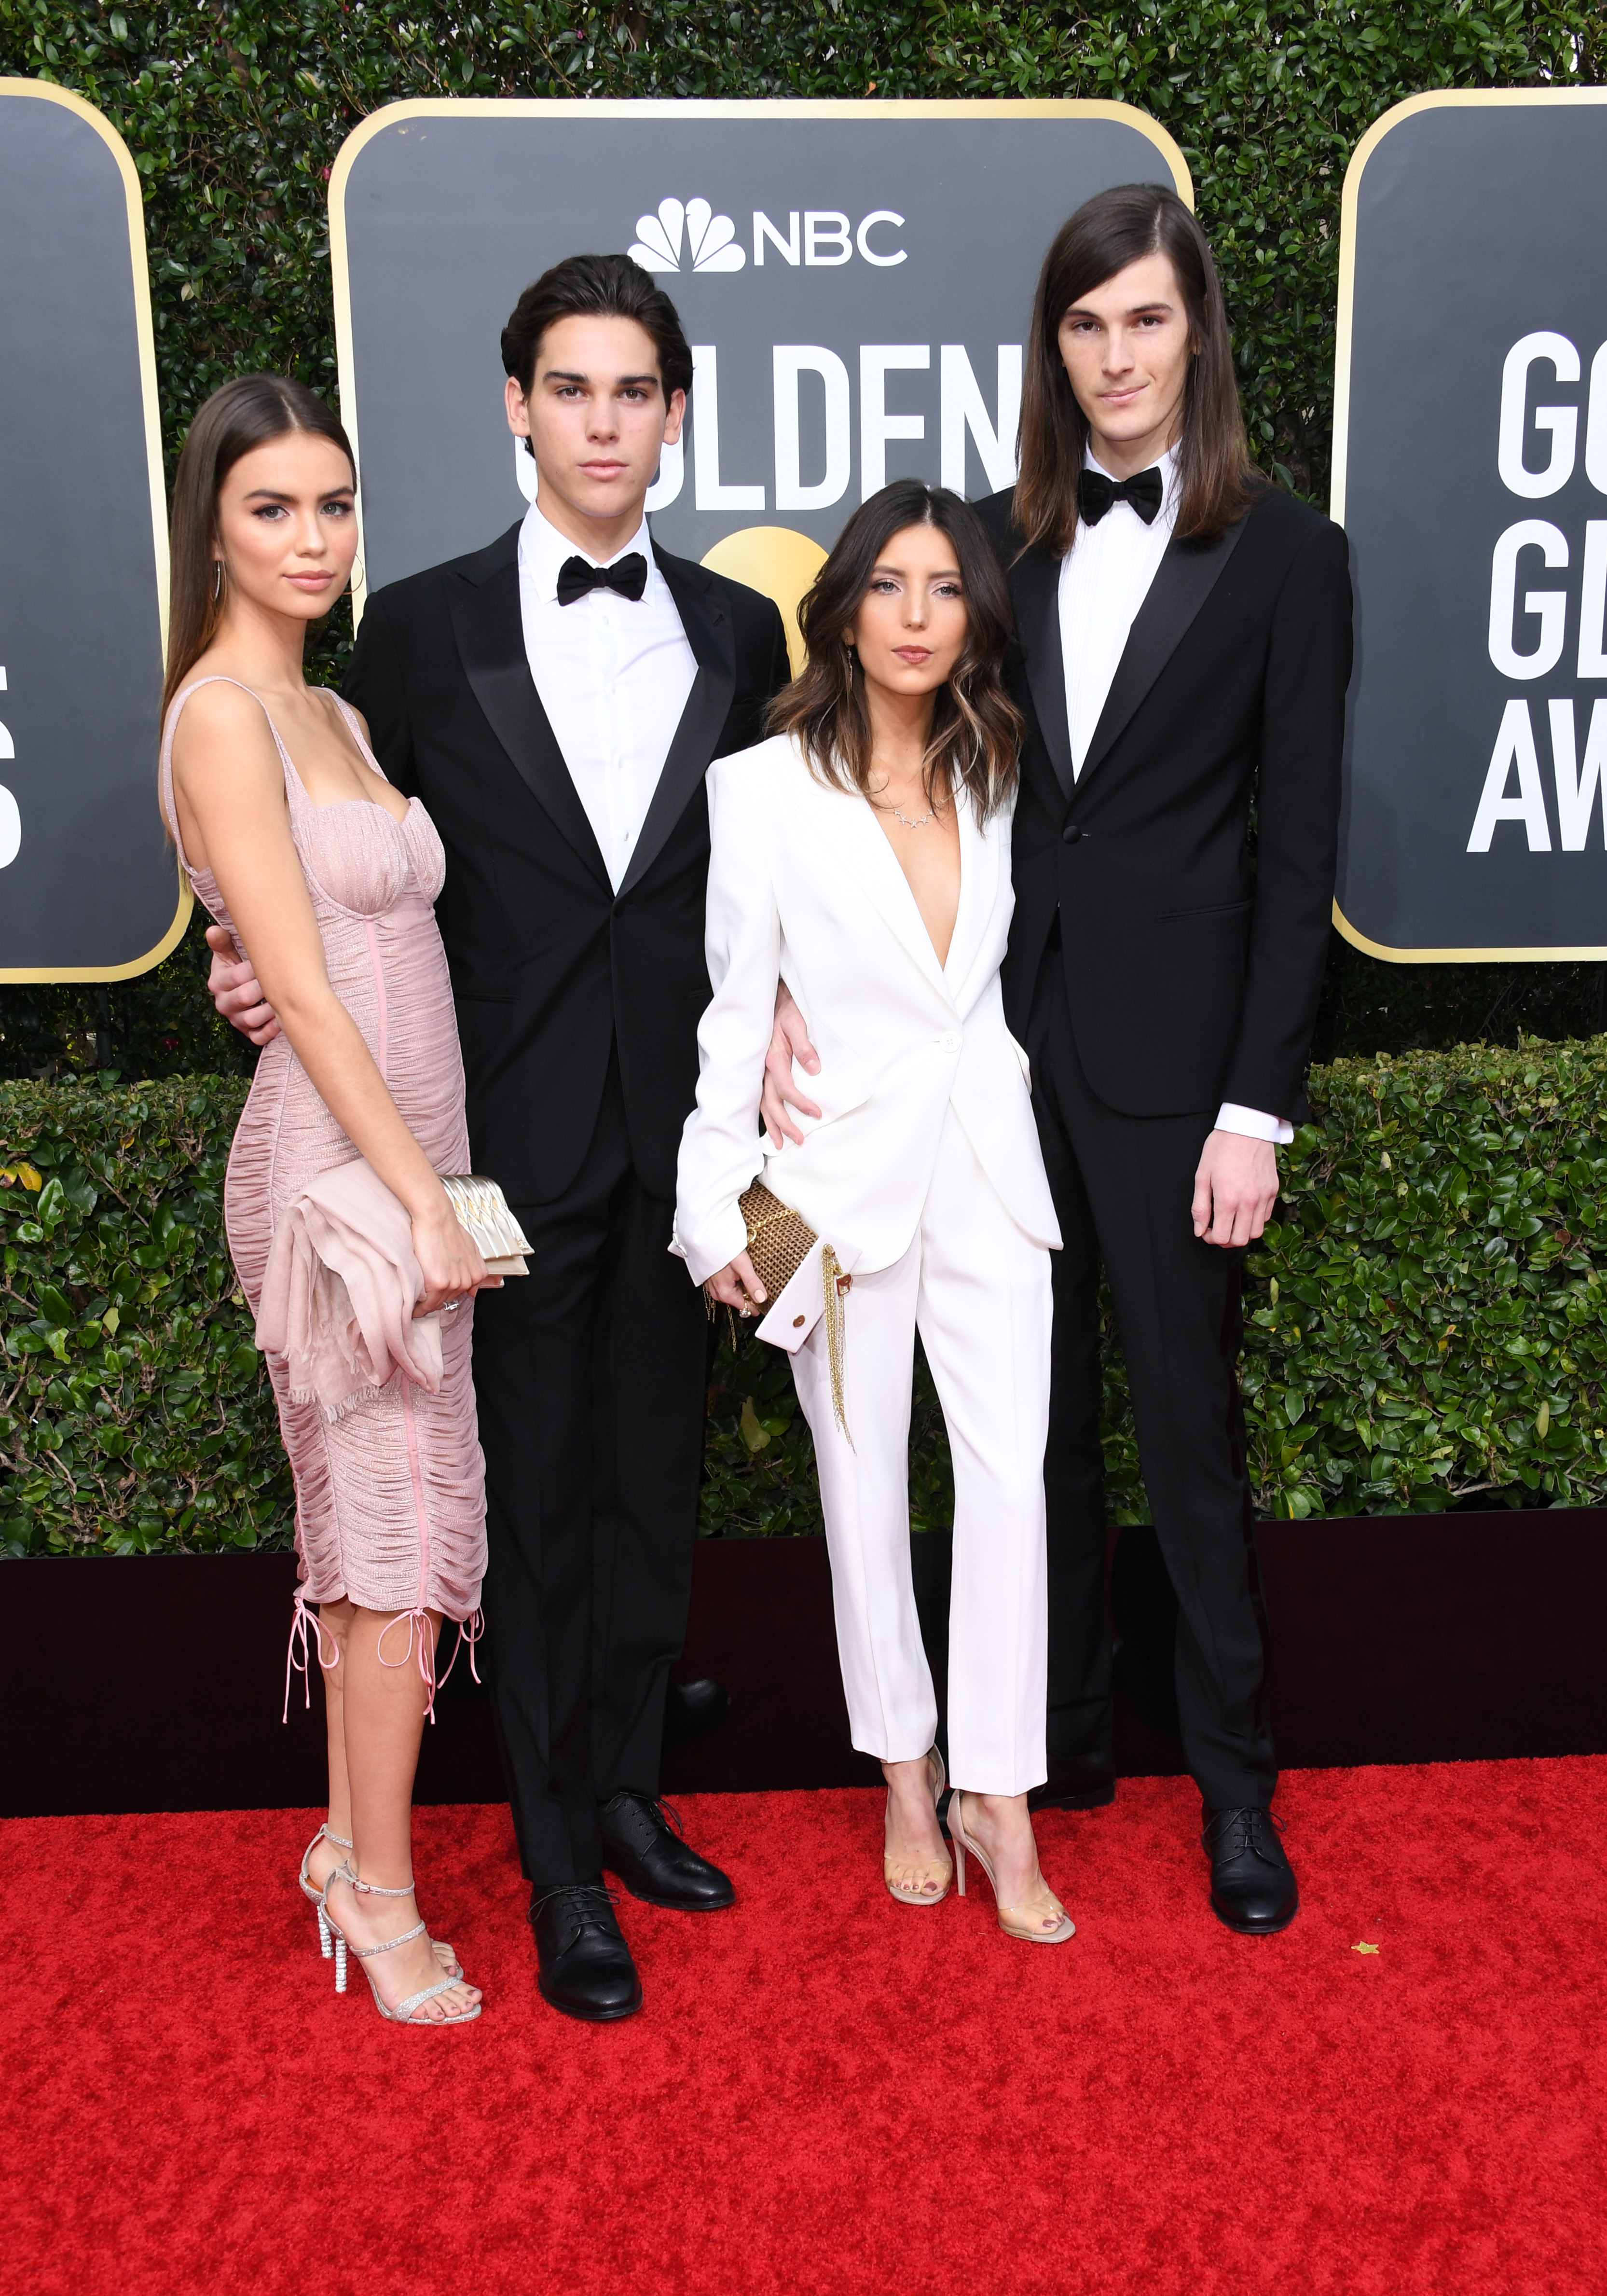 BEVERLY HILLS, CALIFORNIA - JANUARY 05: (L-R) Paris Brosnan (2ndL) and brother Dylan Brosnan and girlfriends attend the 77th Annual Golden Globe Awards at The Beverly Hilton Hotel on January 05, 2020 in Beverly Hills, California. (Photo by Jon Kopaloff/Getty Images)